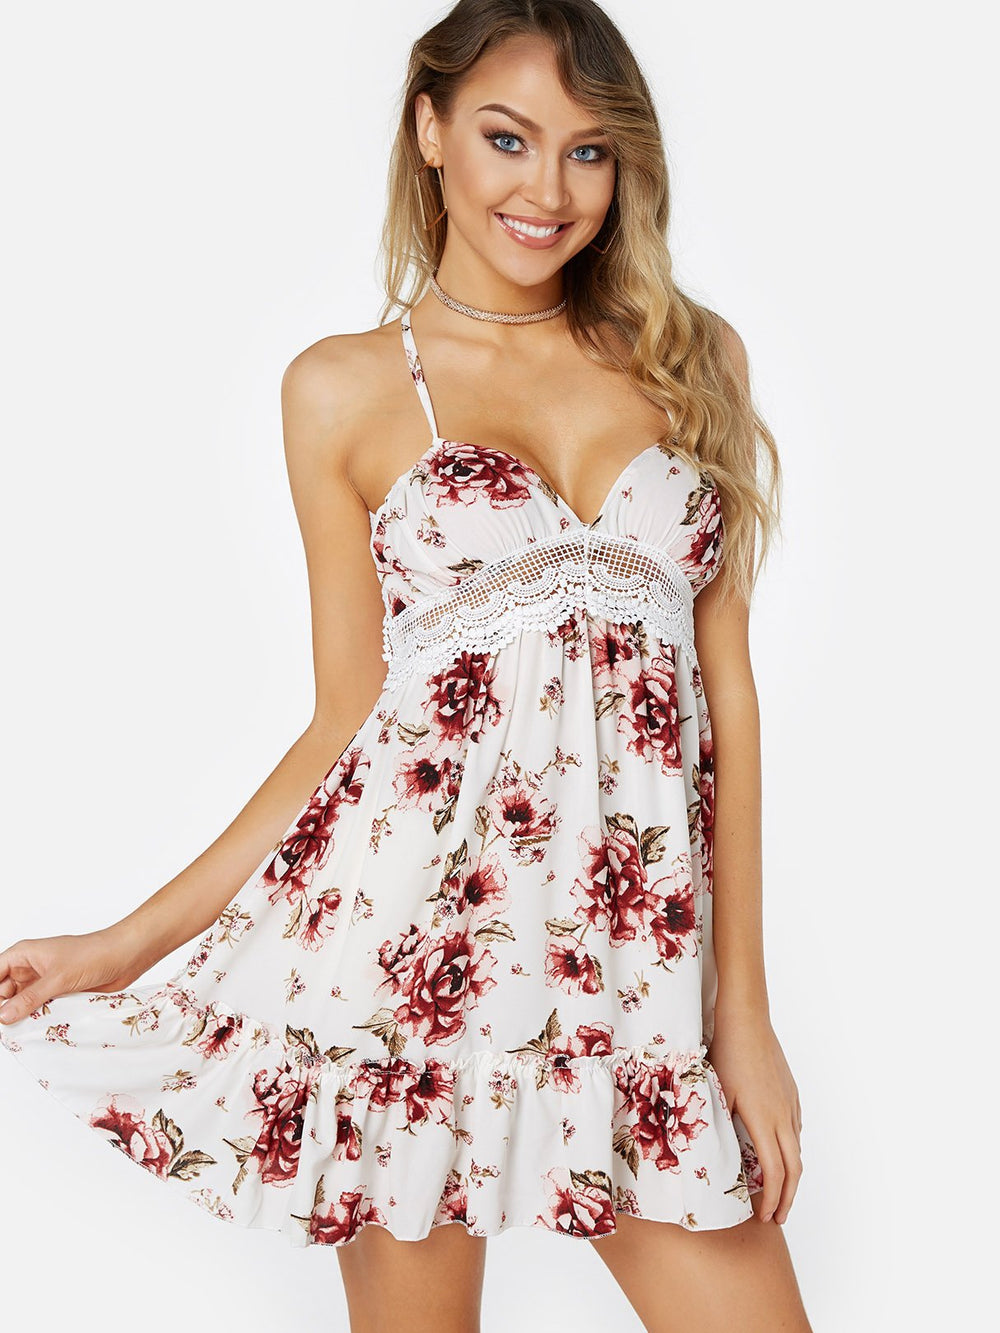 White V-Neck Sleeveless Floral Print Lace Backless Hollow Spaghetti Strap Self-Tie Stitching Hem Mini Dress